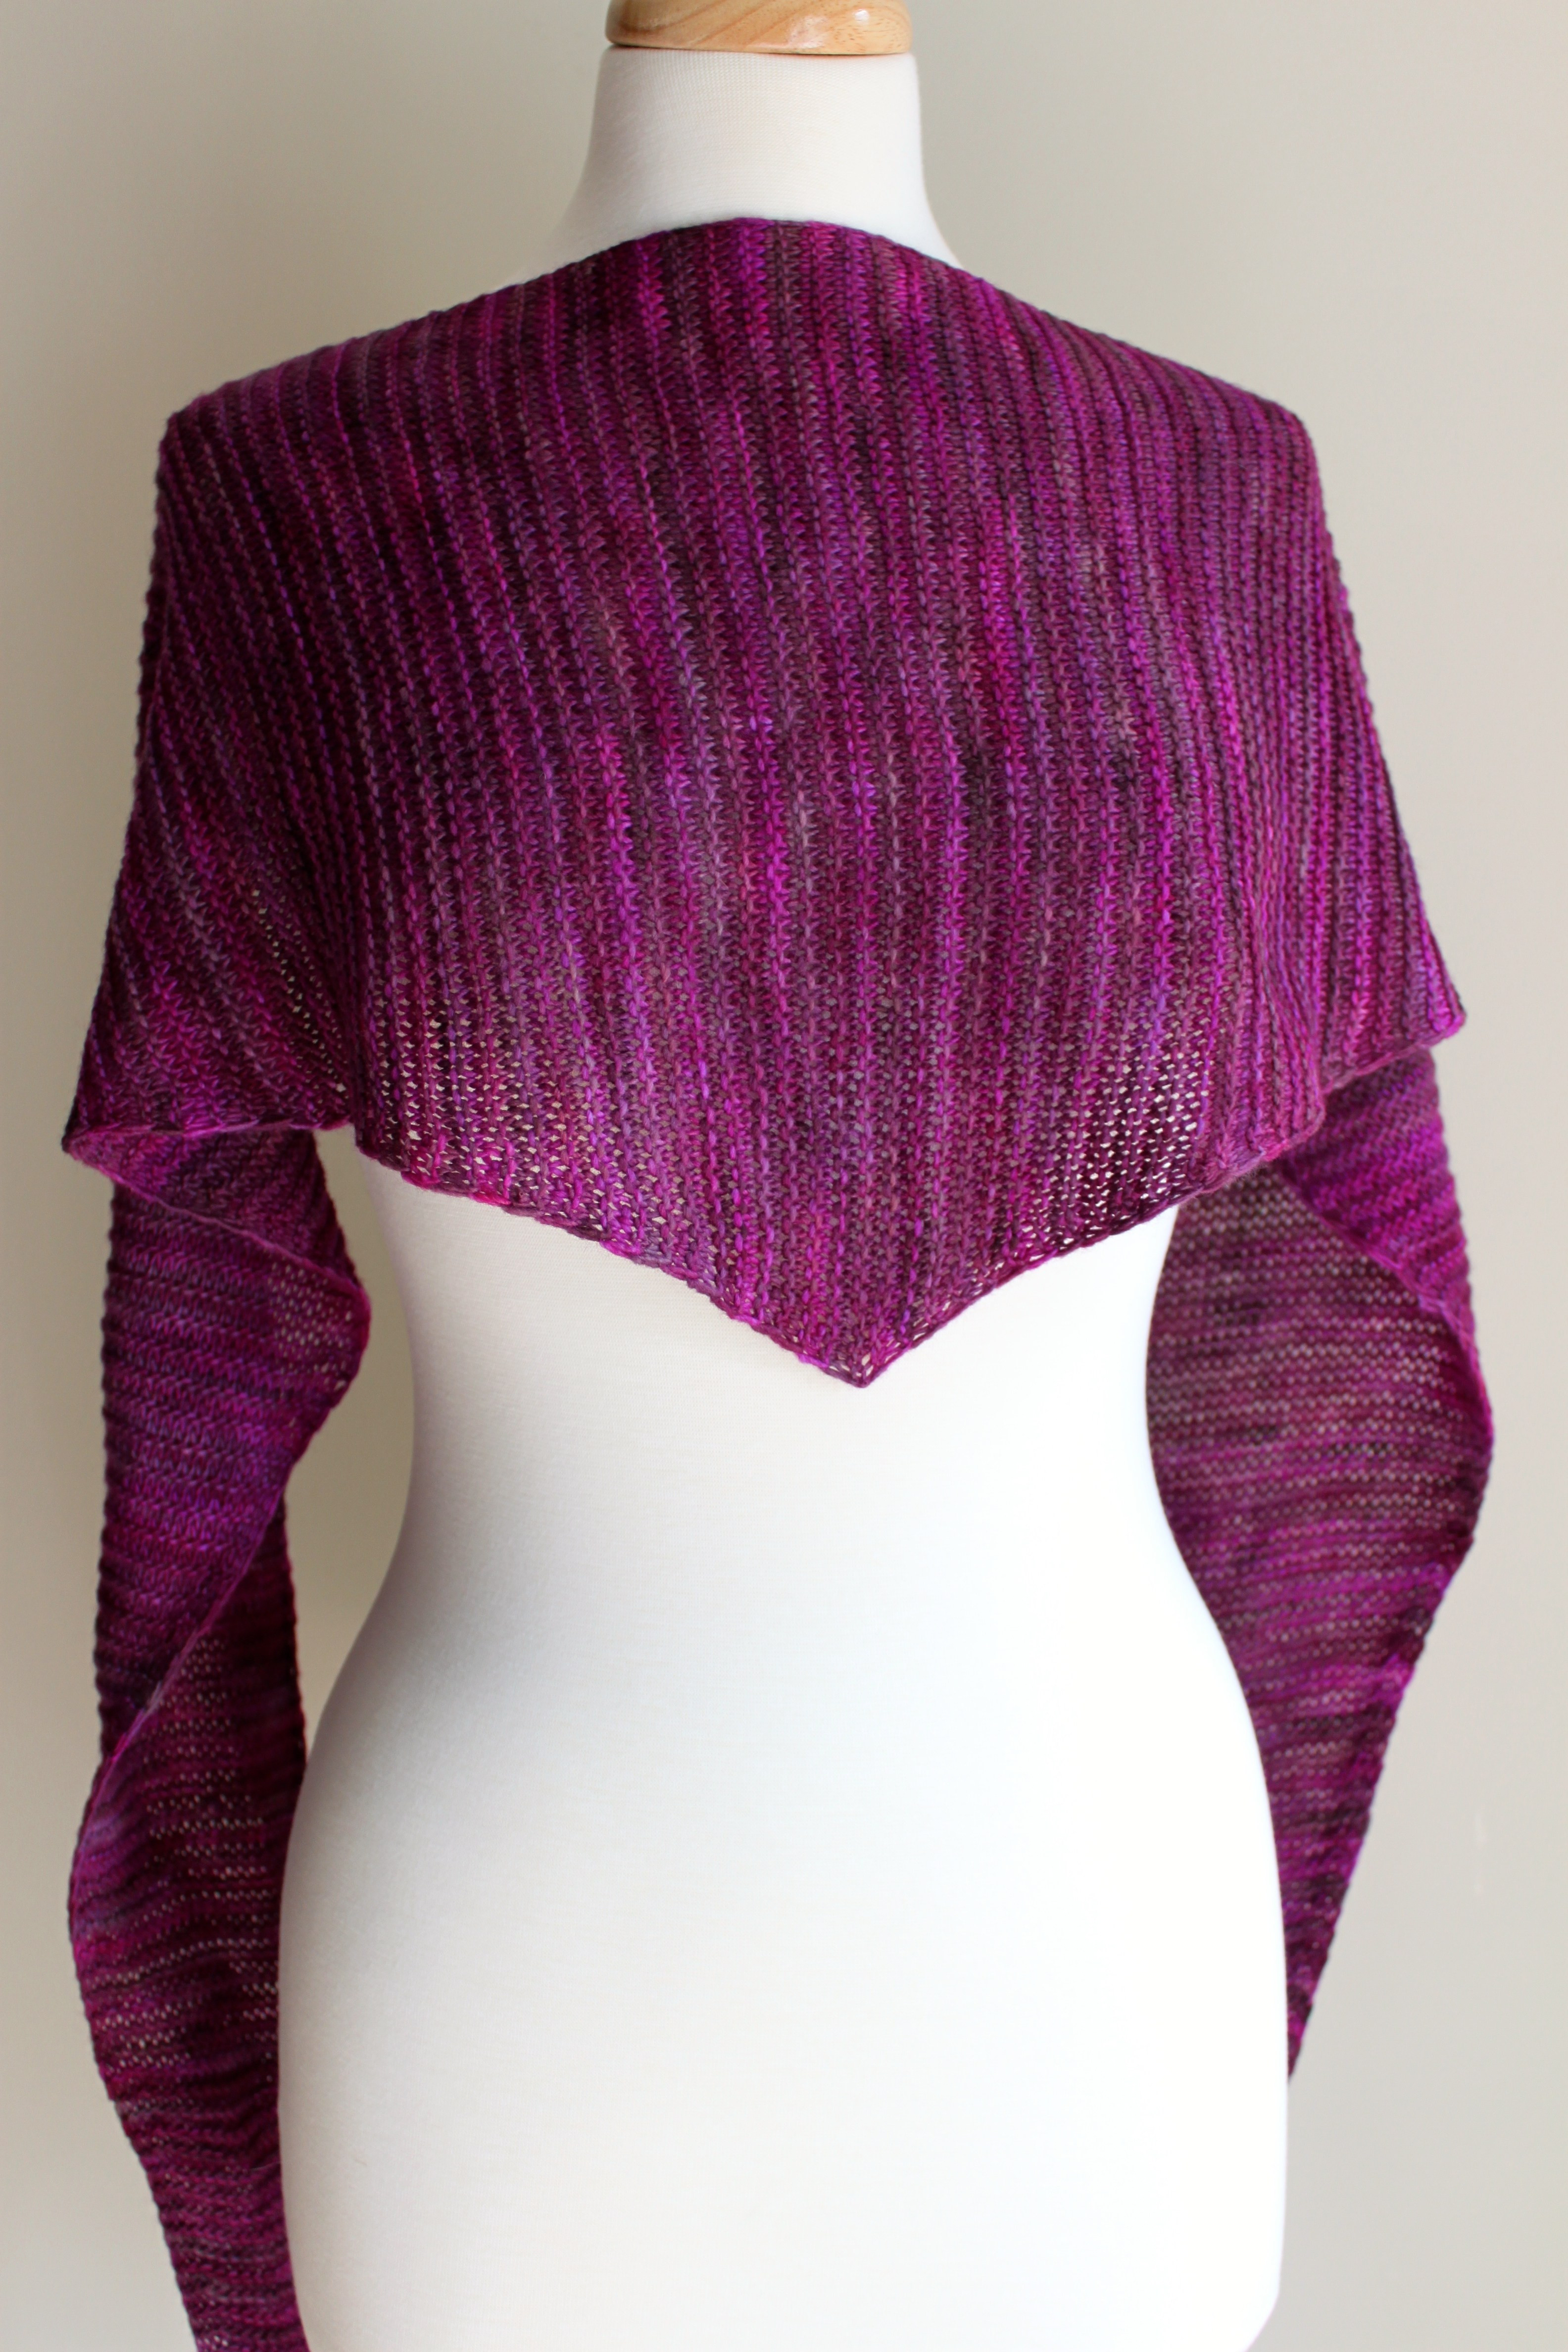 Free Knitting Patterns New Free Knitting Patterns totally Triangular Scarf Leah Of Amazing 46 Ideas Free Knitting Patterns